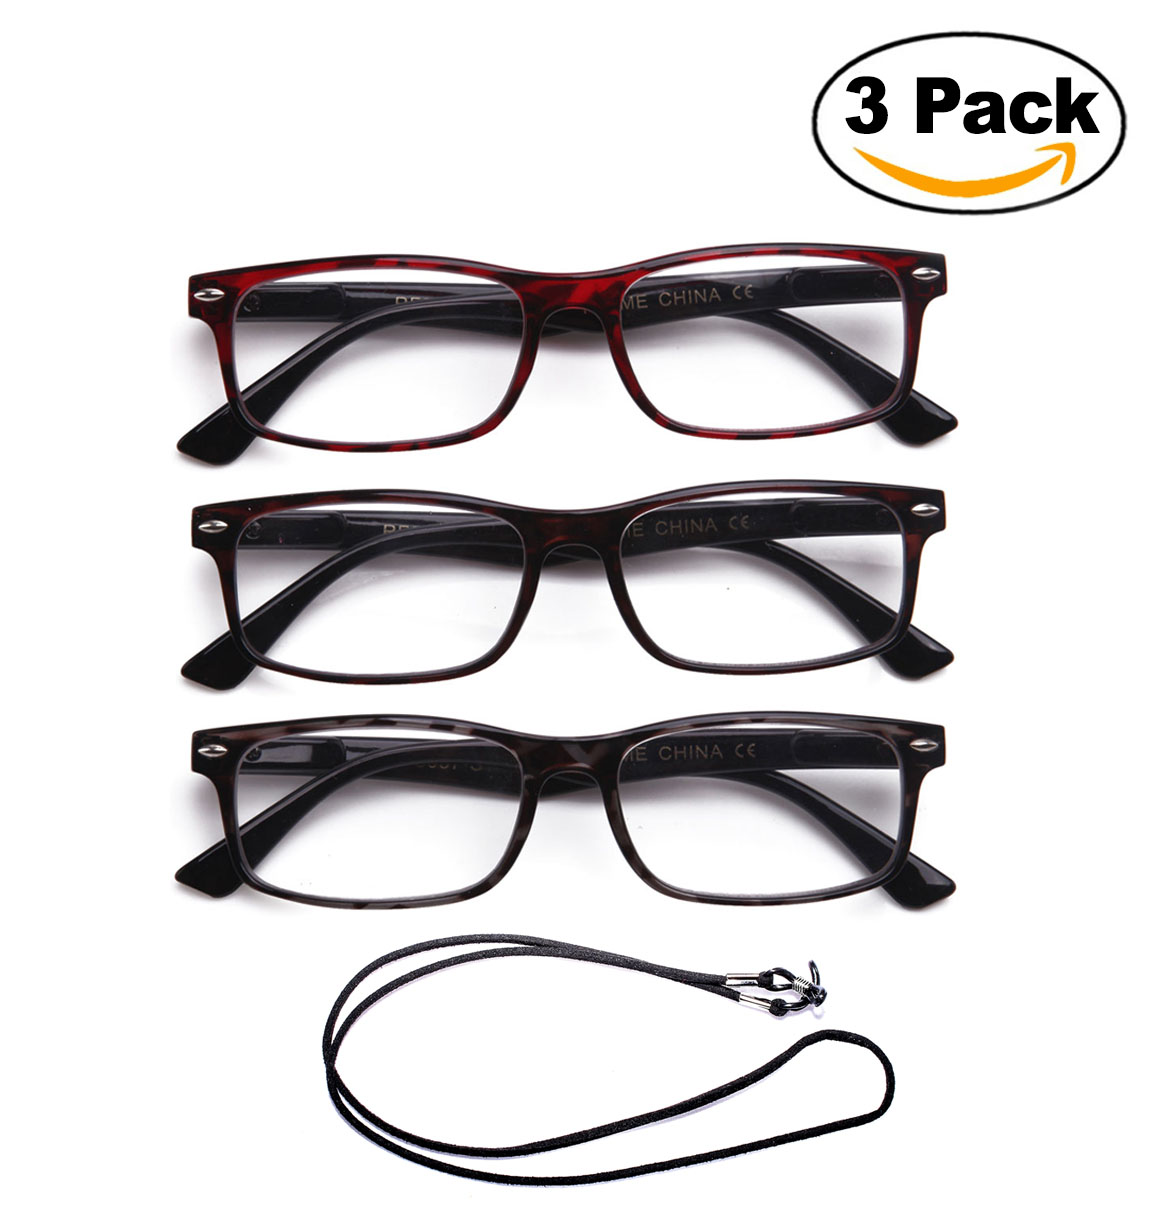 3 Pack Light Compact Squared Fashion Reading Glasses Translucent Spring Hinges with Lanyard +2.00